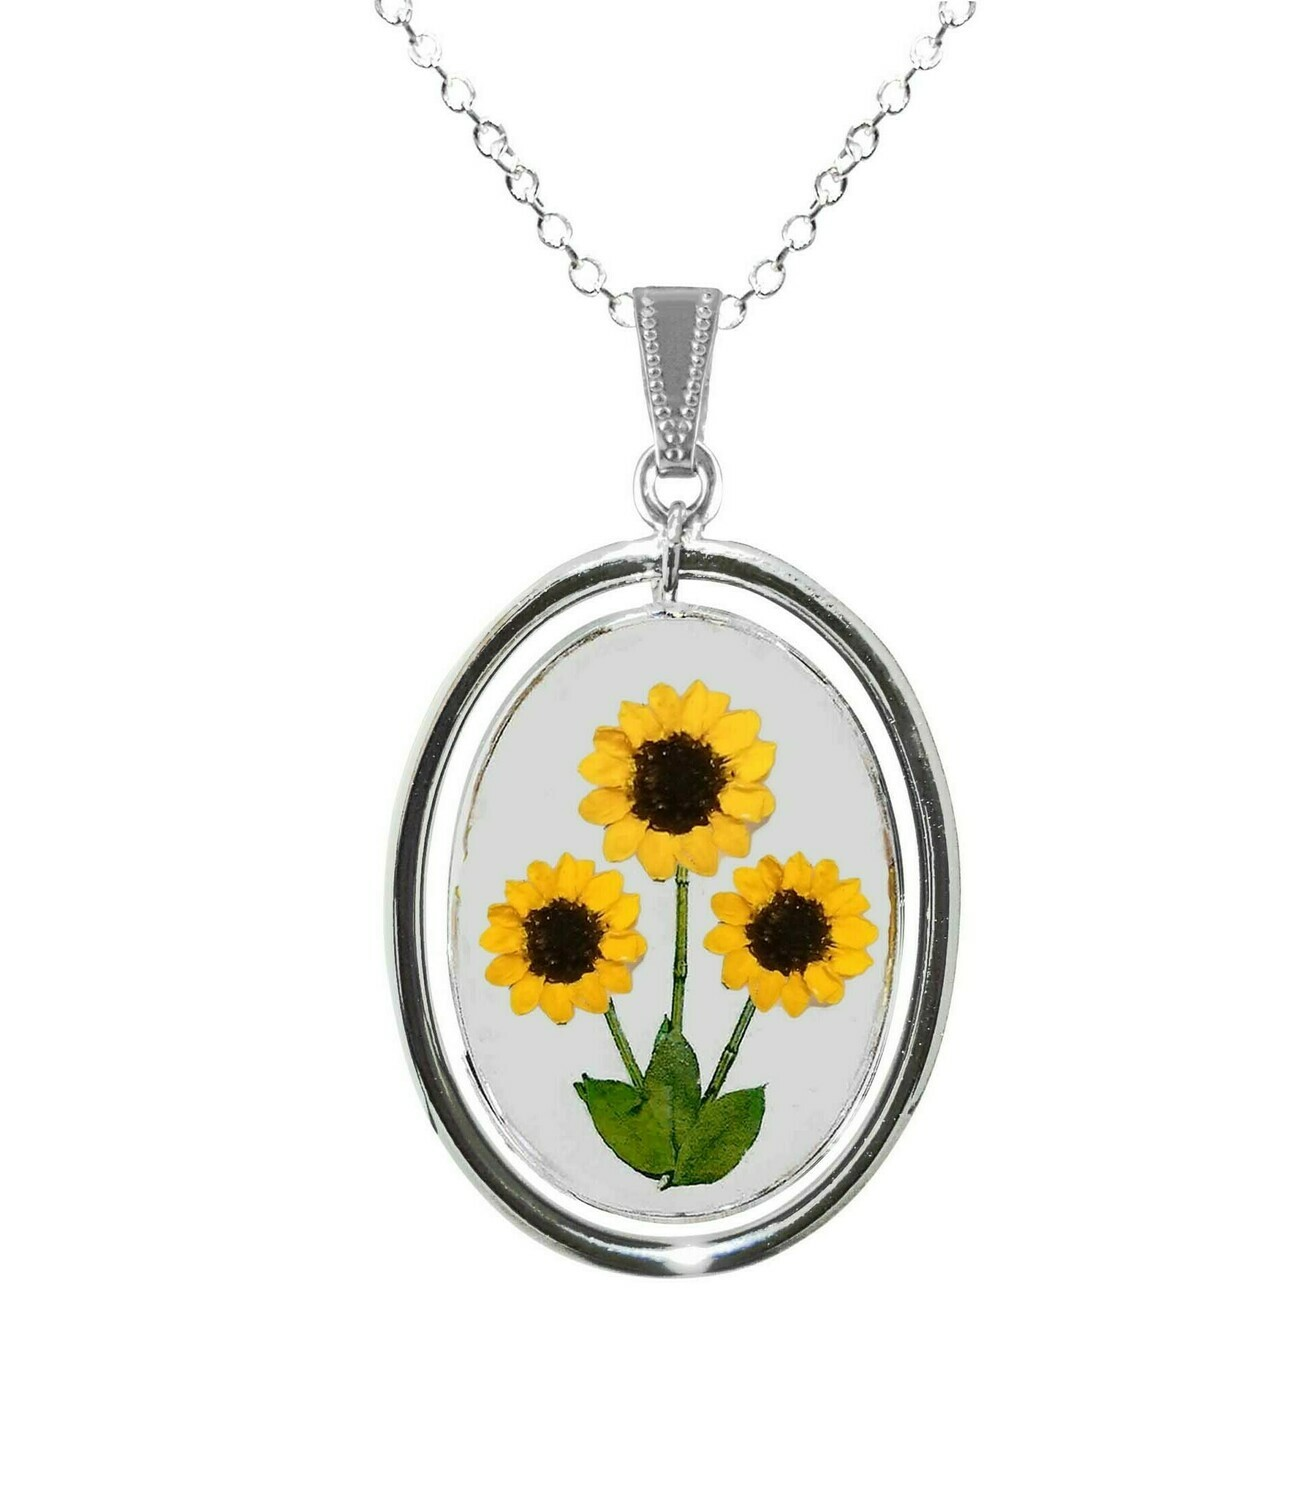 Sunflower Necklace, X-Large Swivel Oval, Transparent